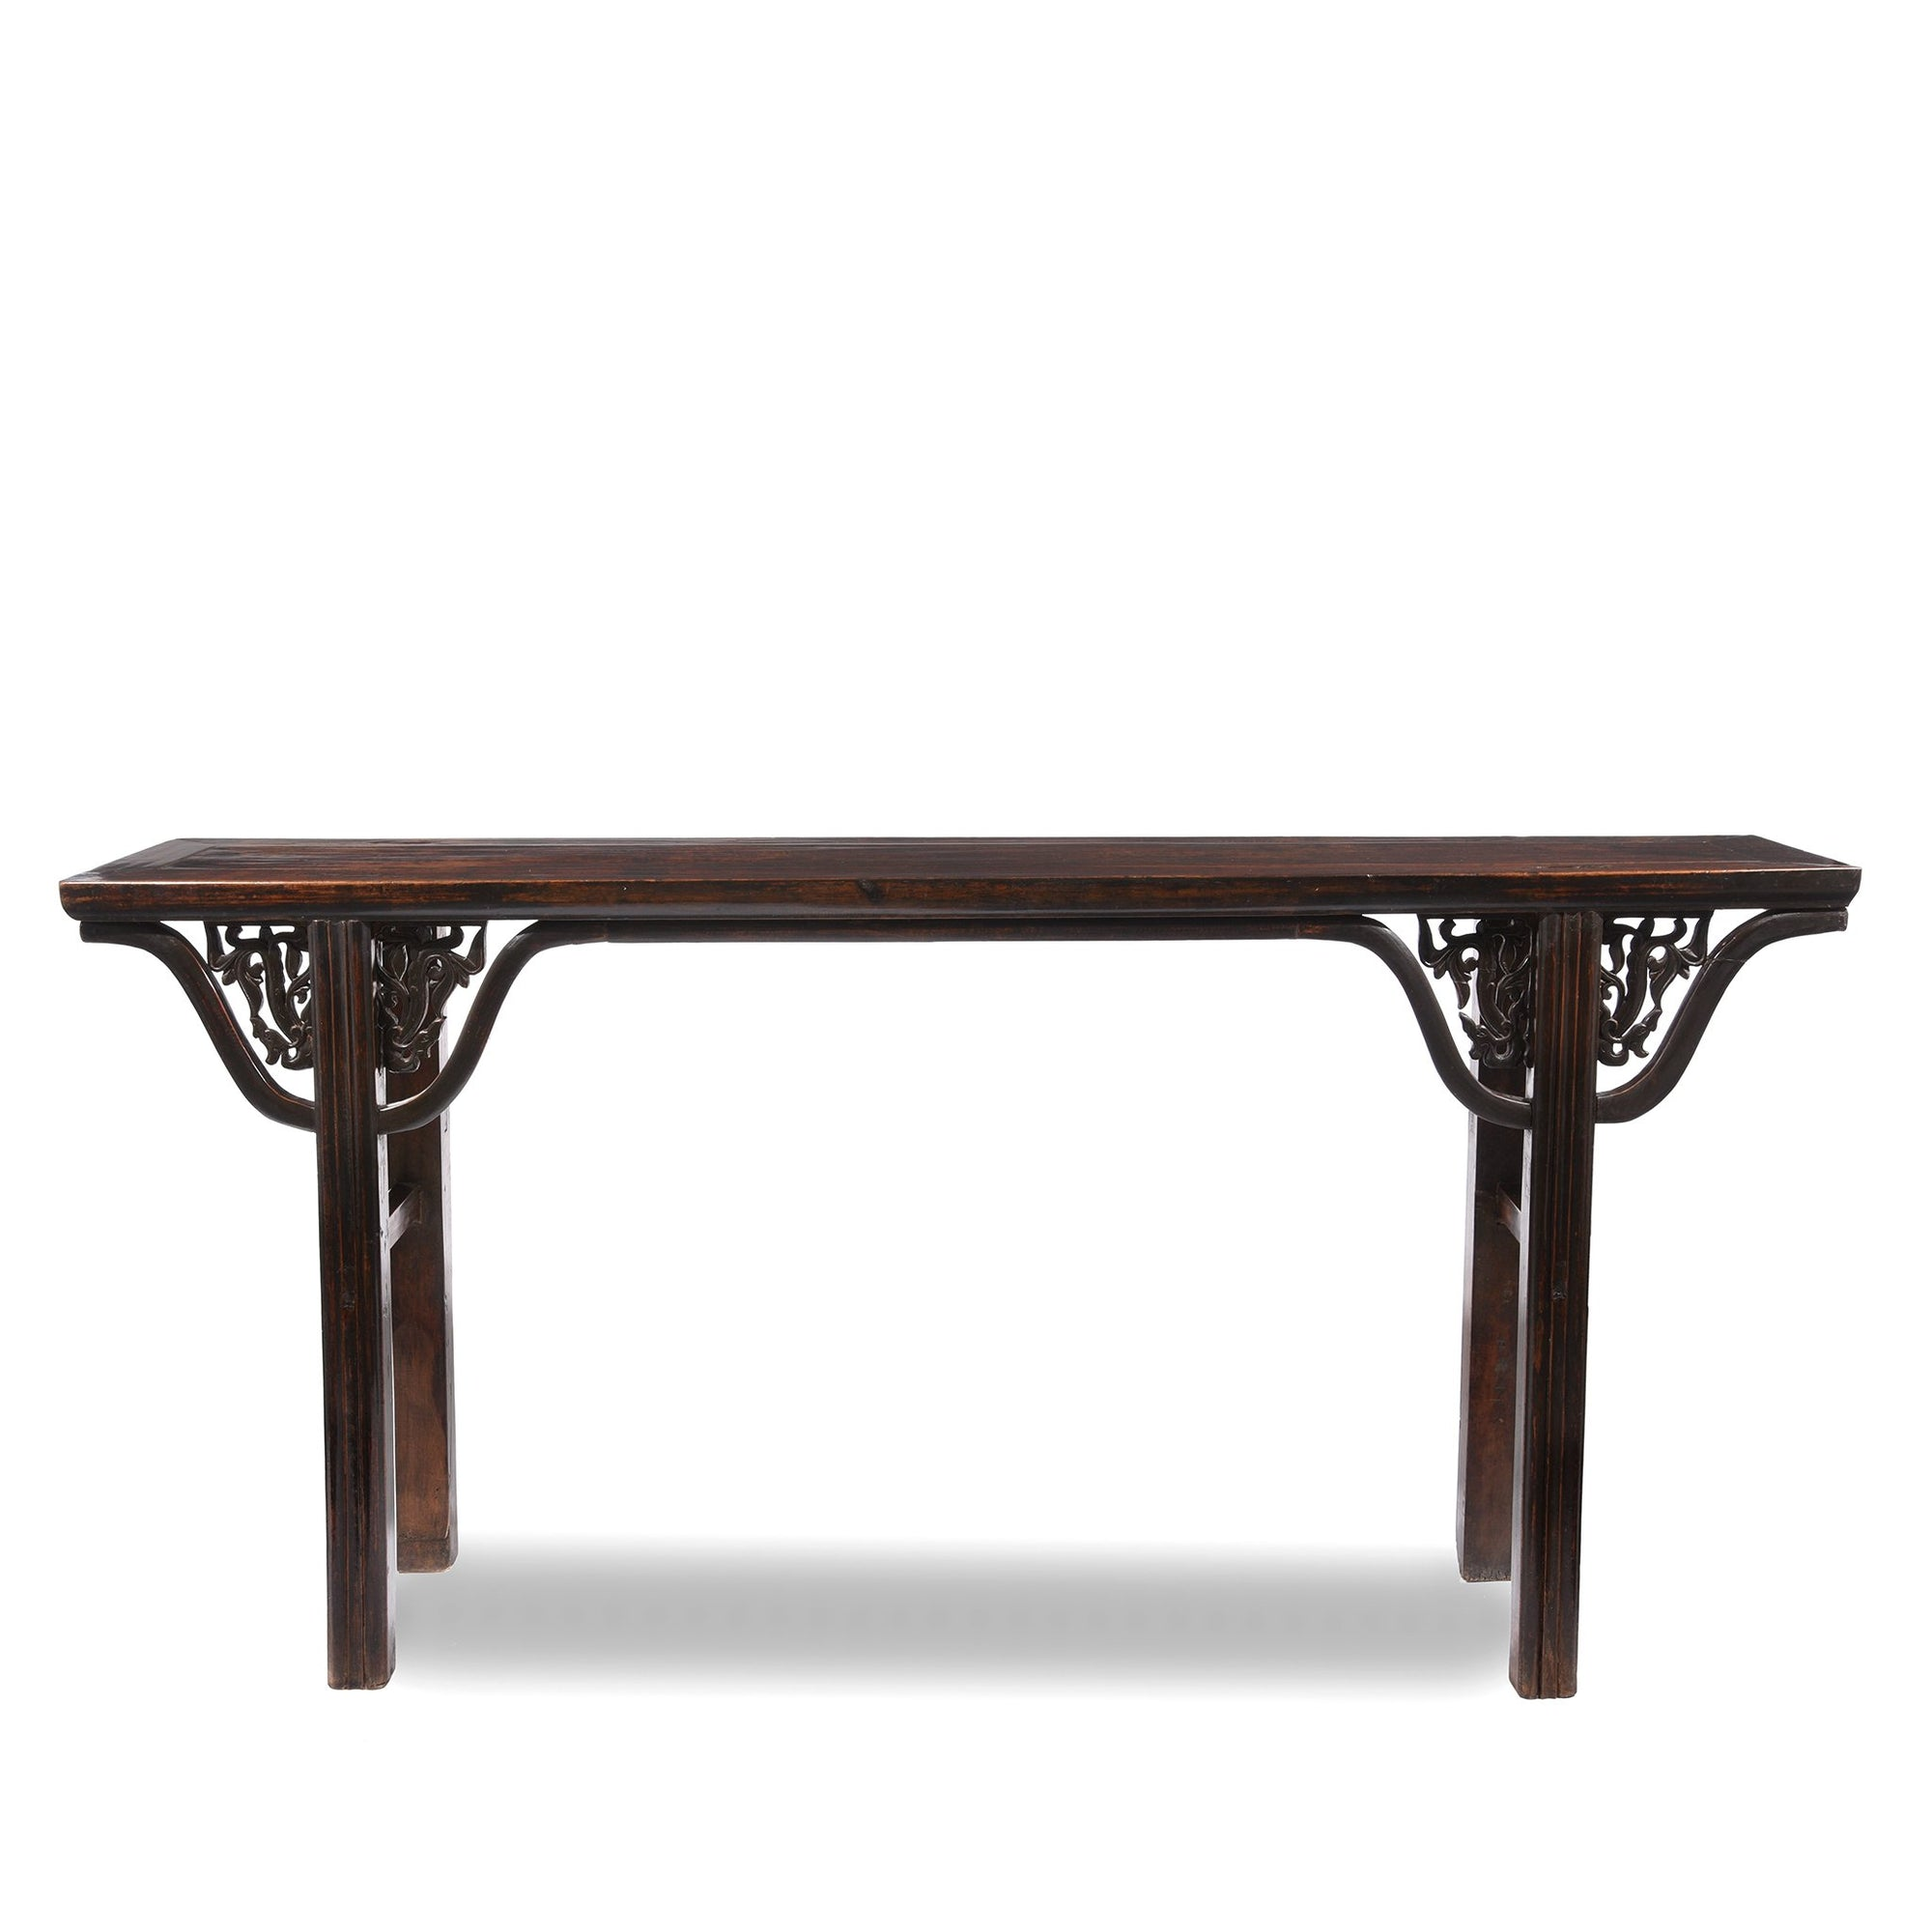 Dark Lacquer Walnut wood Chinese Altar Table - 19thC | Indigo Oriental Antiques